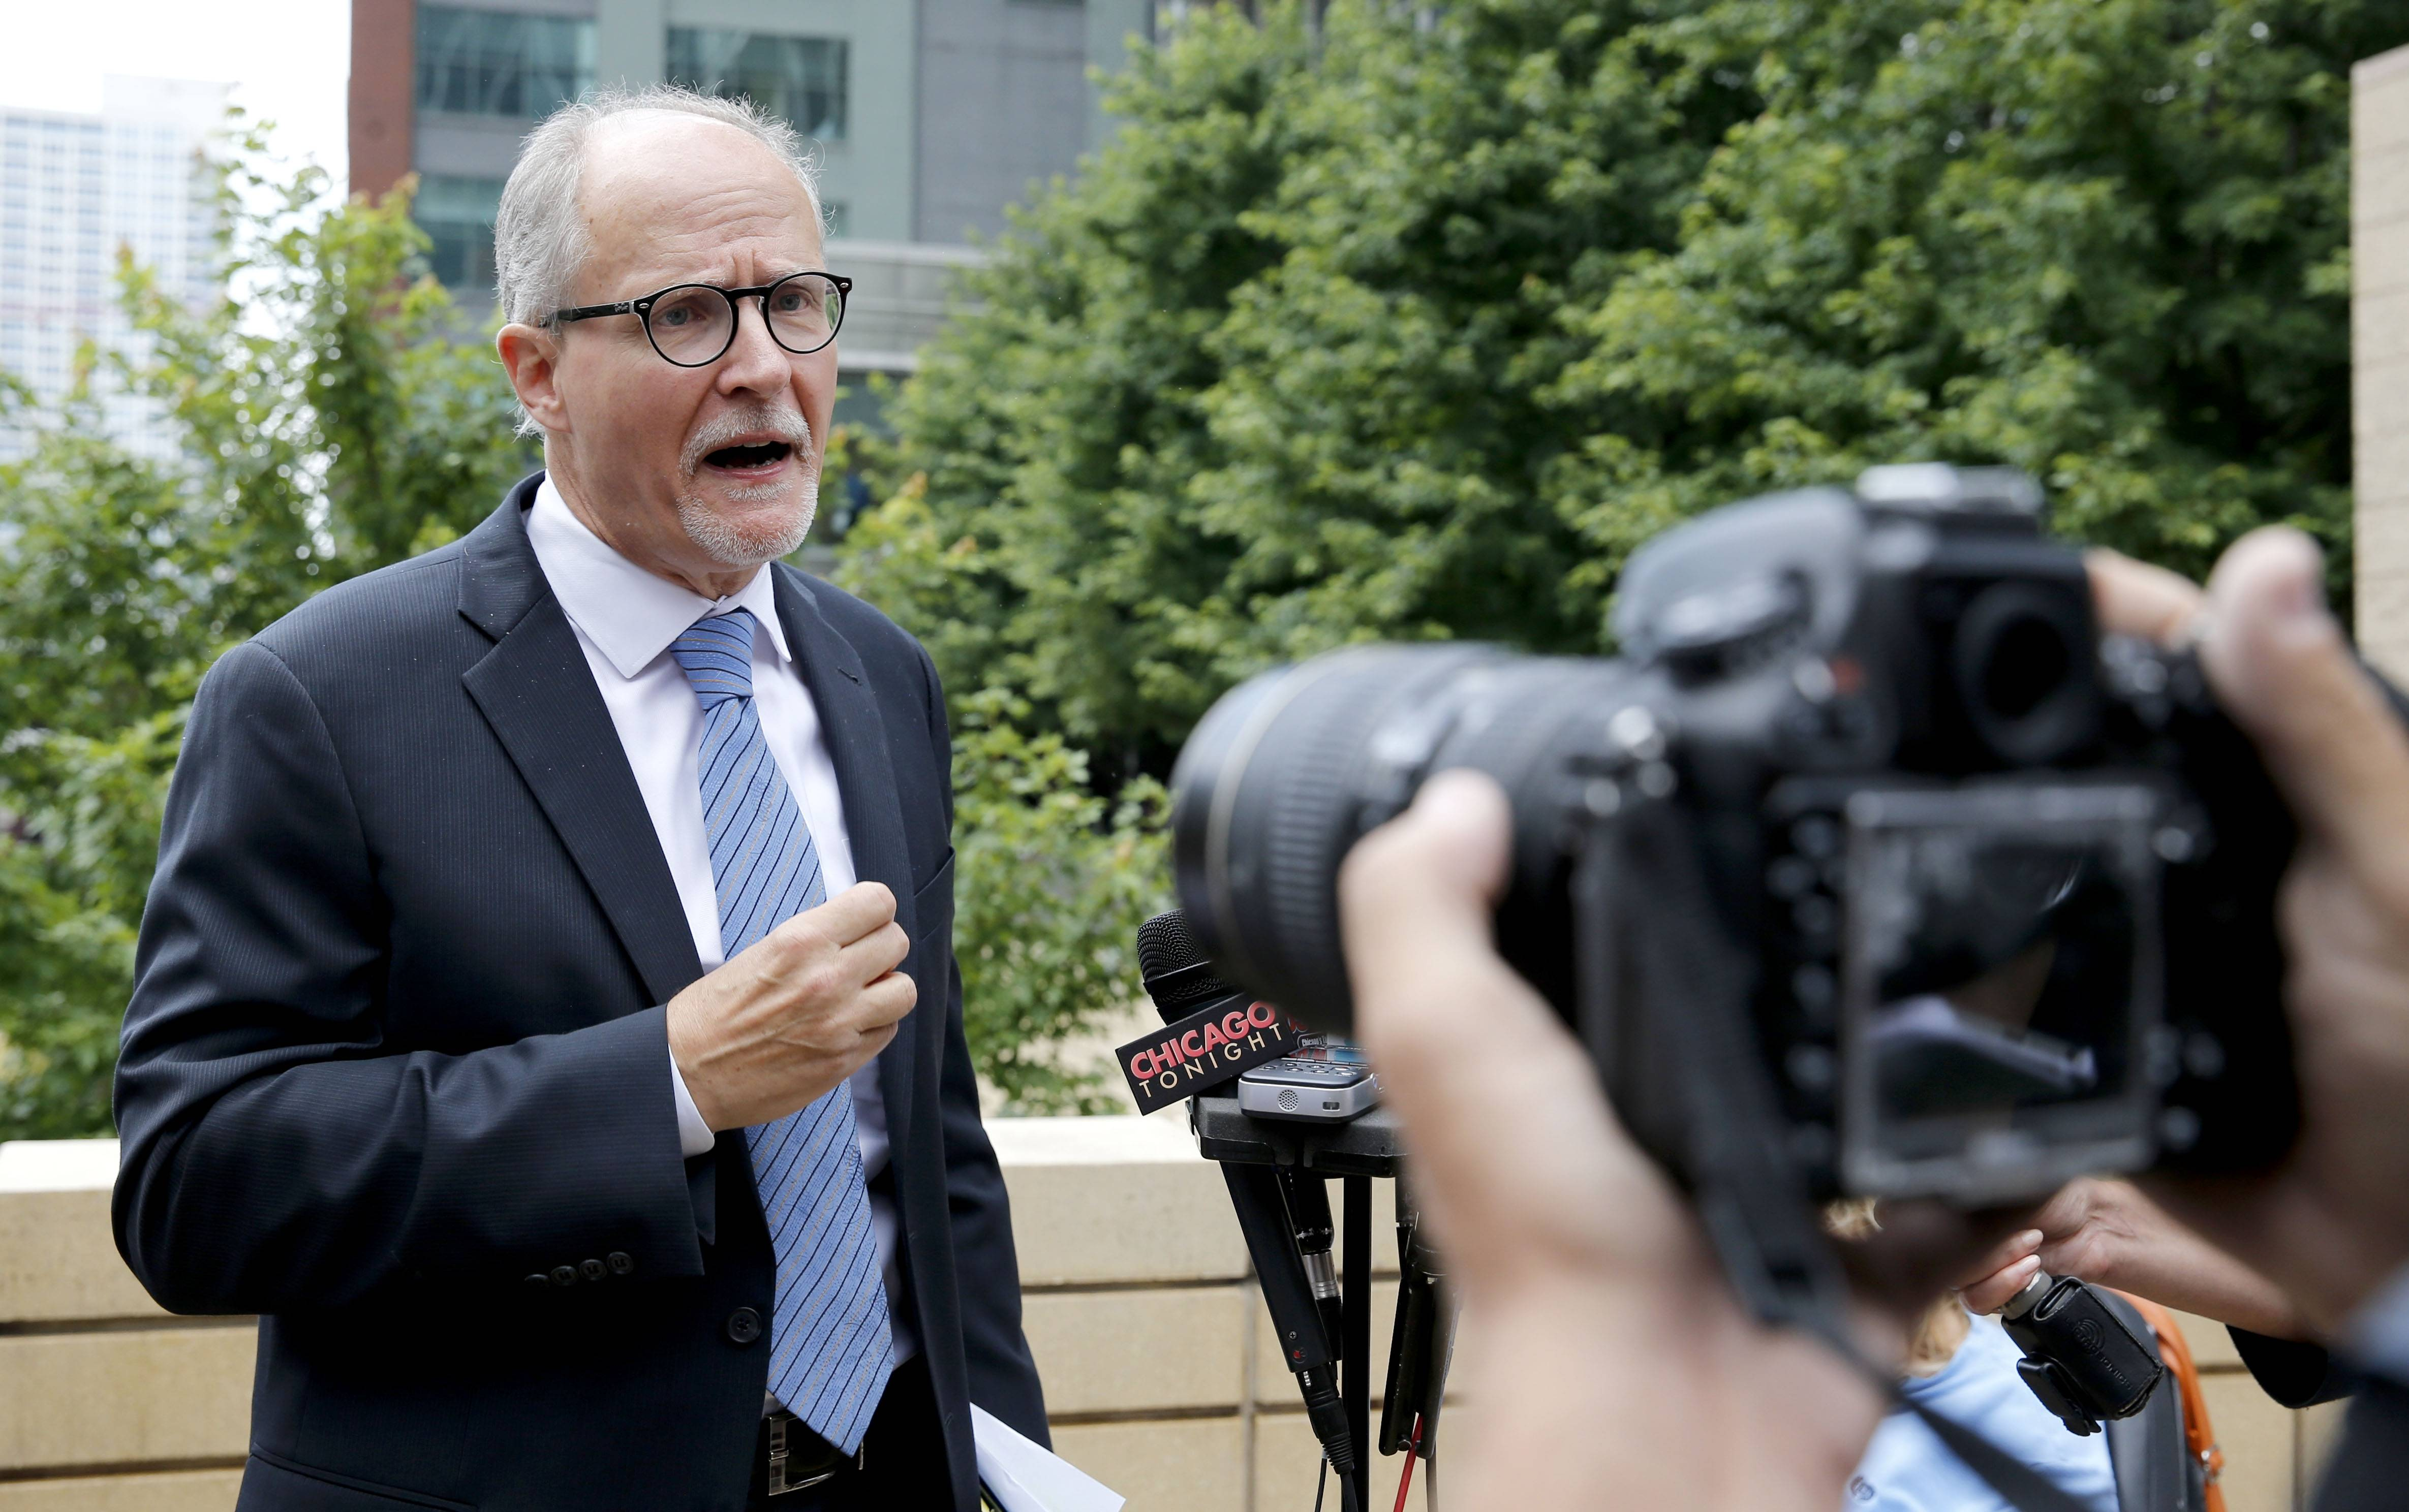 Democratic Lt. Gov. candidate Paul Vallas talks to reporters about GOP gubernatorial candidate Bruce Rauner's business record during a news conference, Monday in Chicago. Vallas ripped Rauner on new allegations against a company linked to the wealthy venture capitalist.